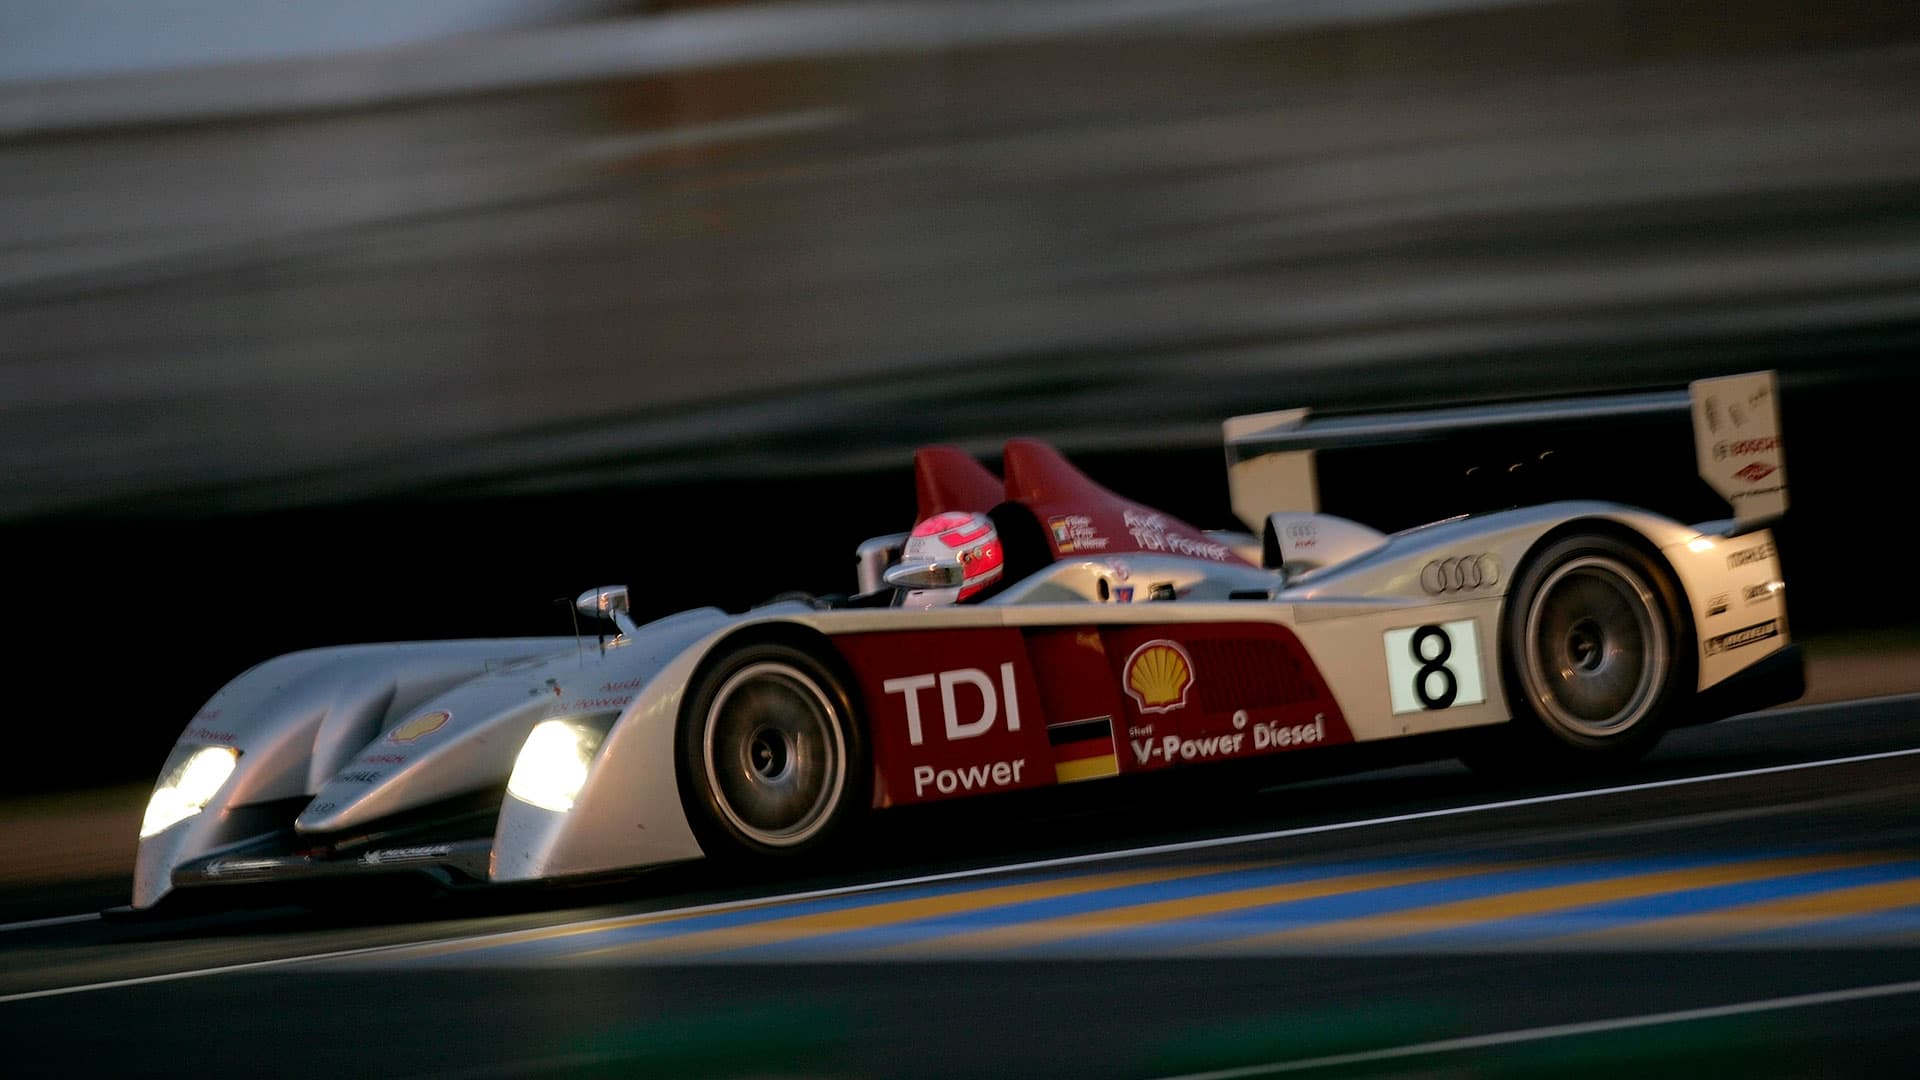 2006: The Audi R10 TDI Was The First Ever Car With Diesel Power To Triumph  In The Legendary Le Mans 24 Hours.